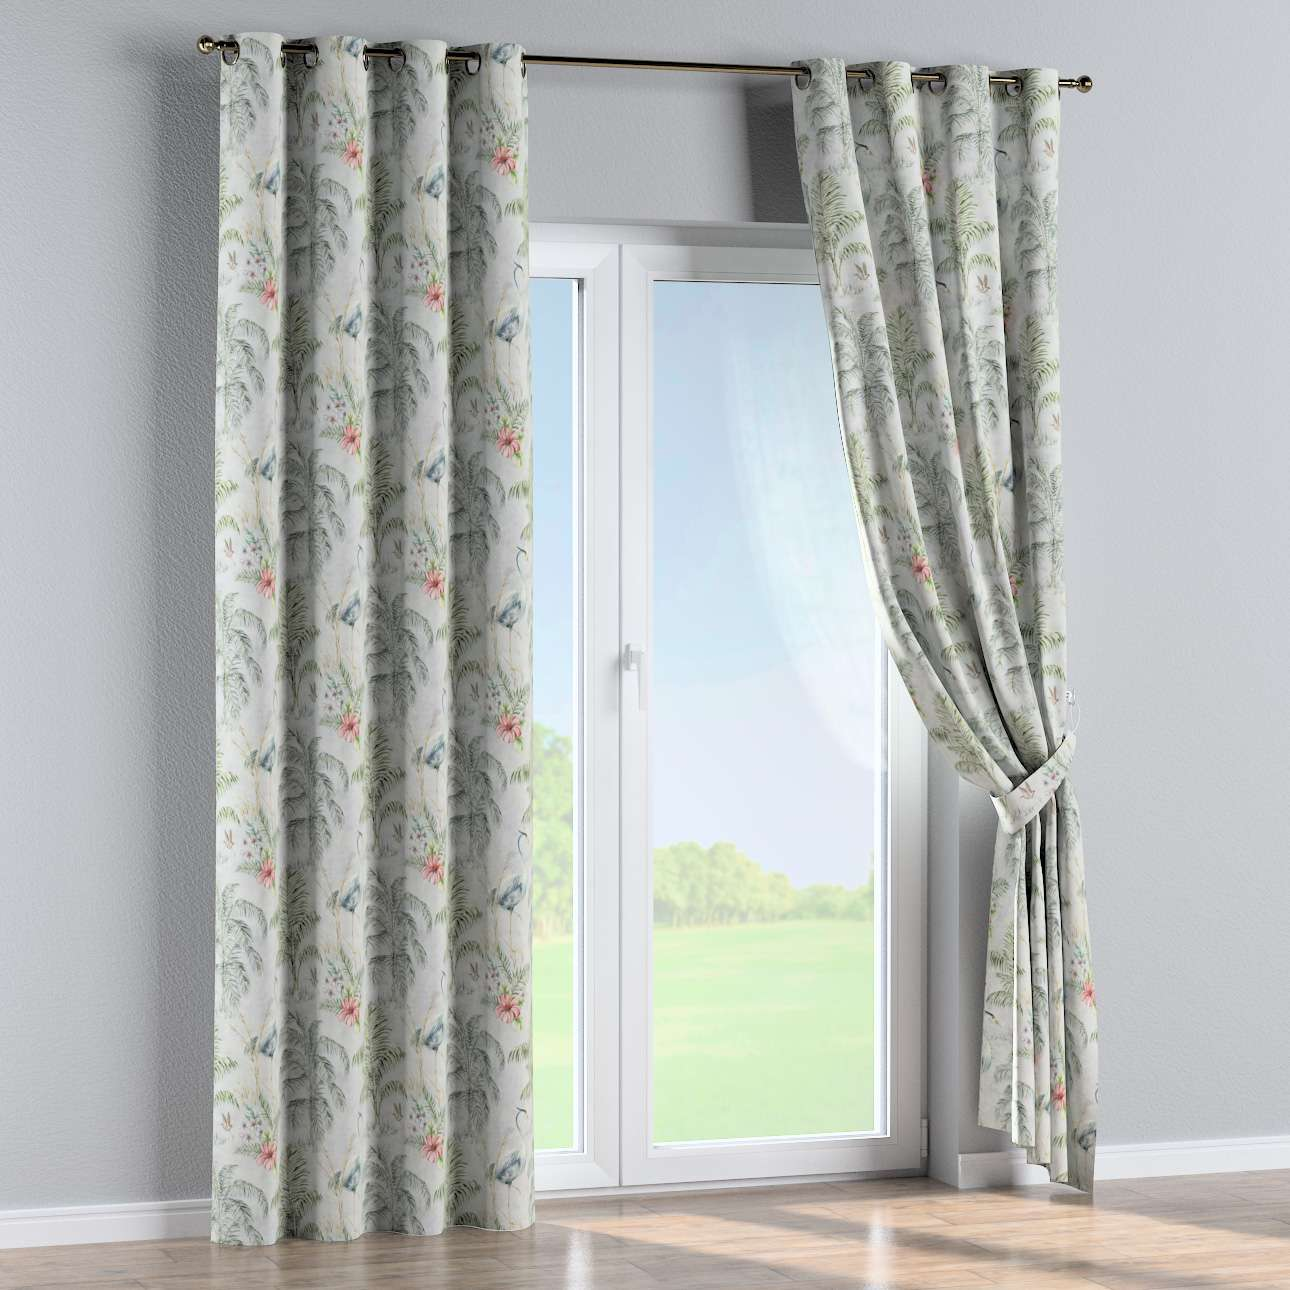 Eyelet curtains in collection Tropical Island, fabric: 142-58